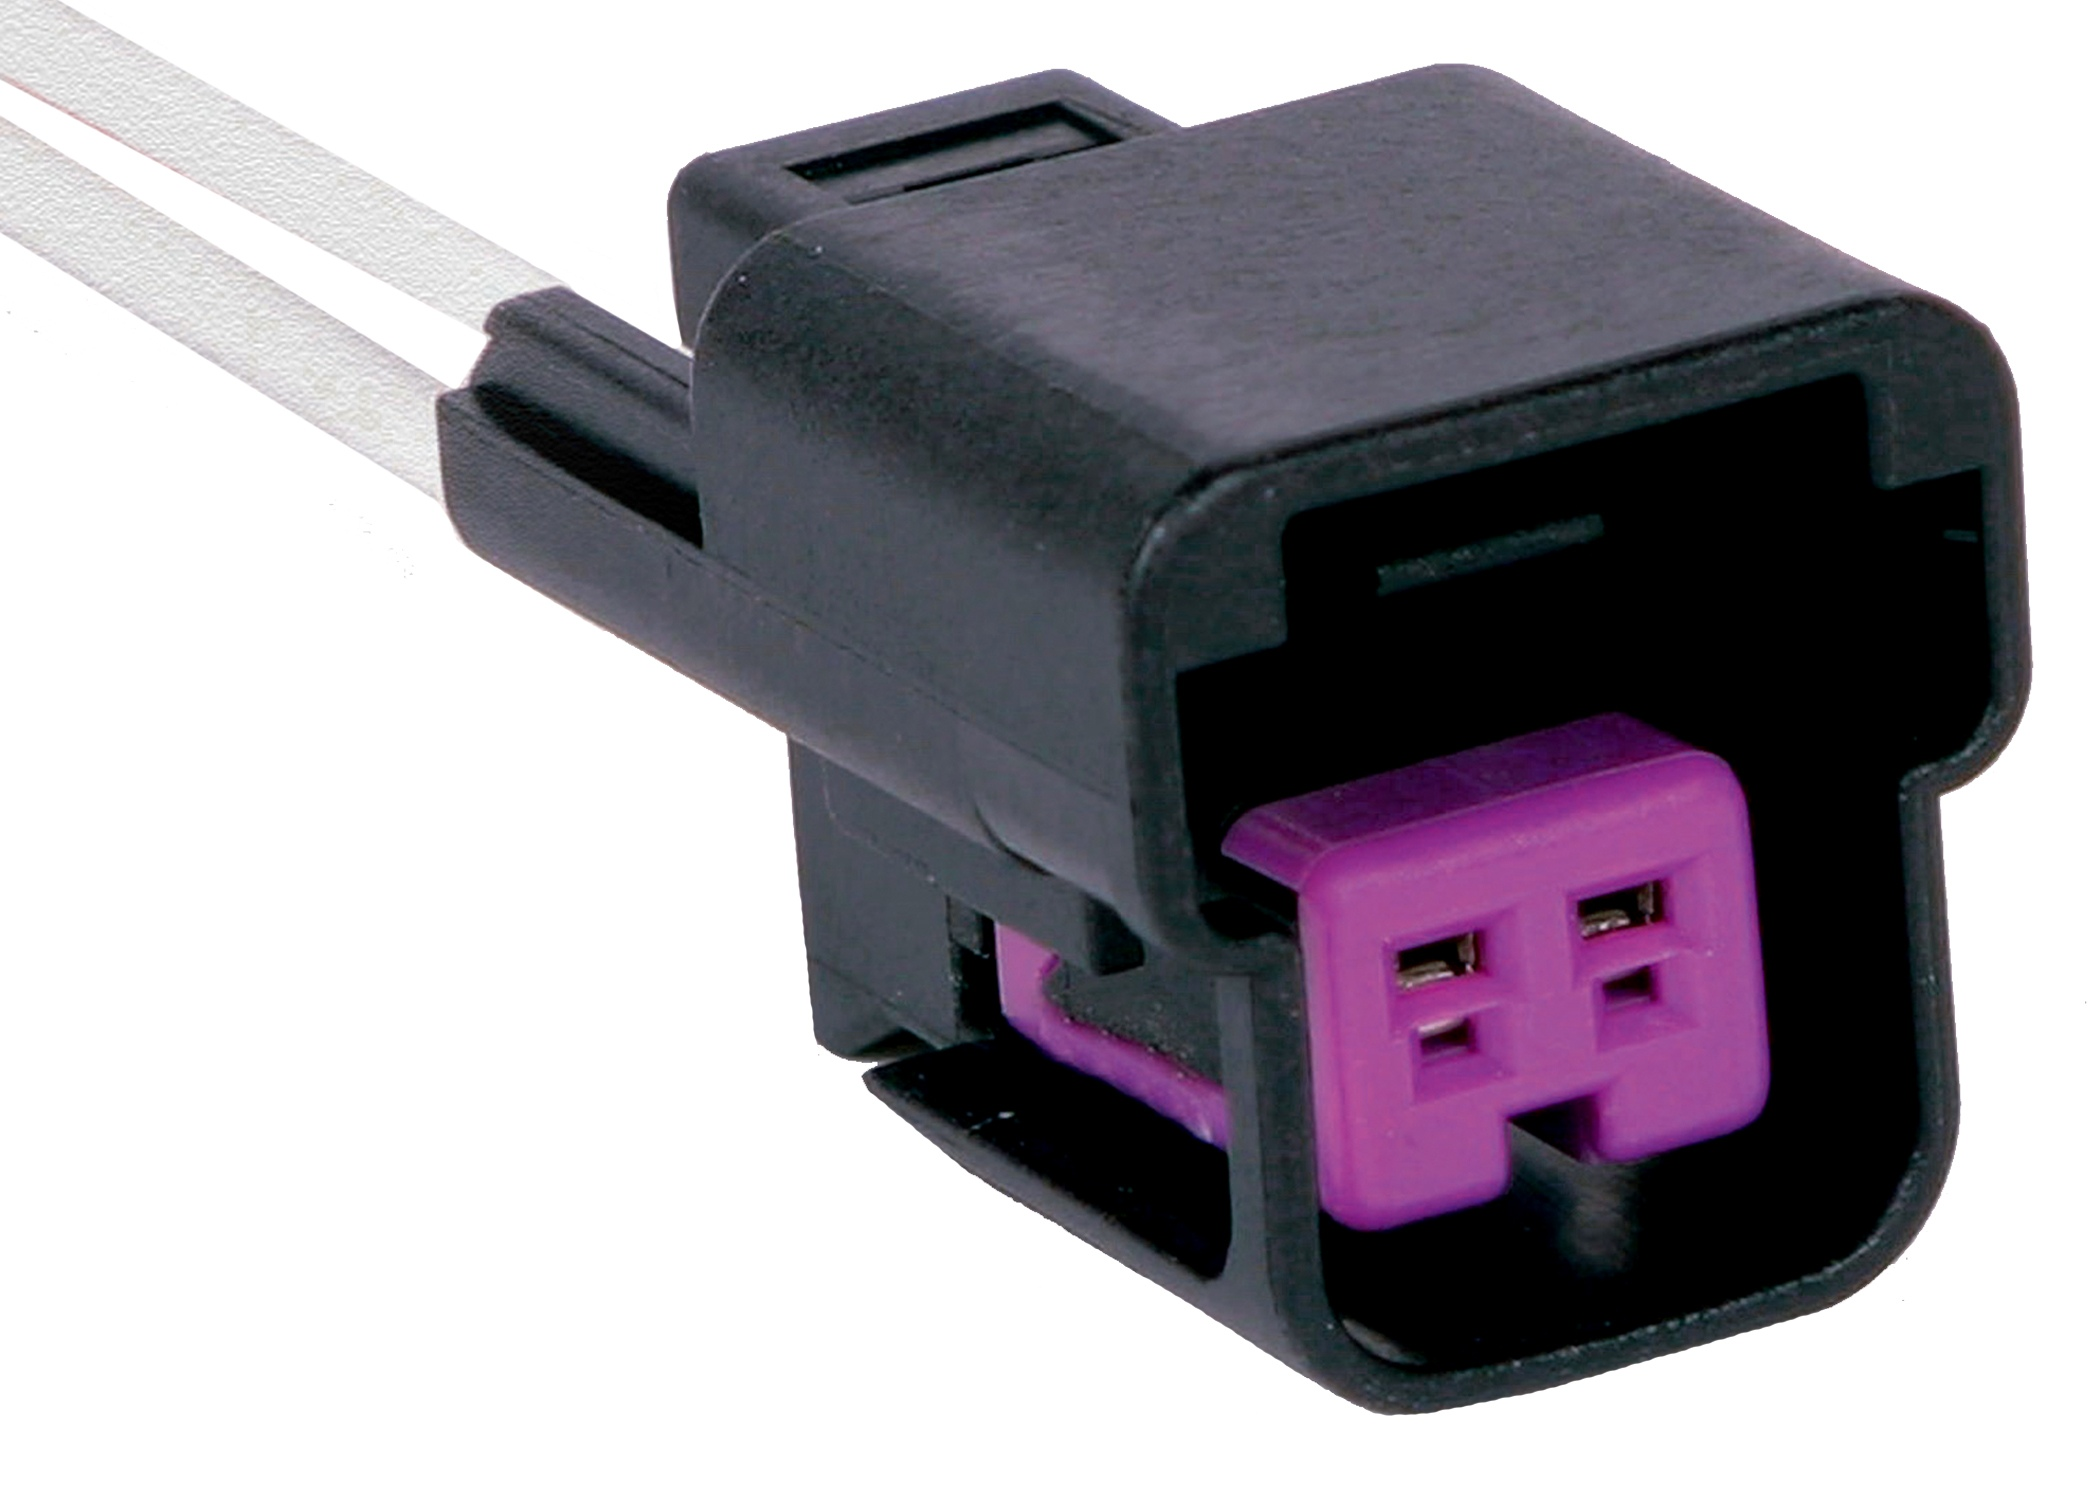 ACDELCO OE SERVICE - Folding Top Lugg Carr Lugg Presence Detector Switch Conn - DCB PT1538